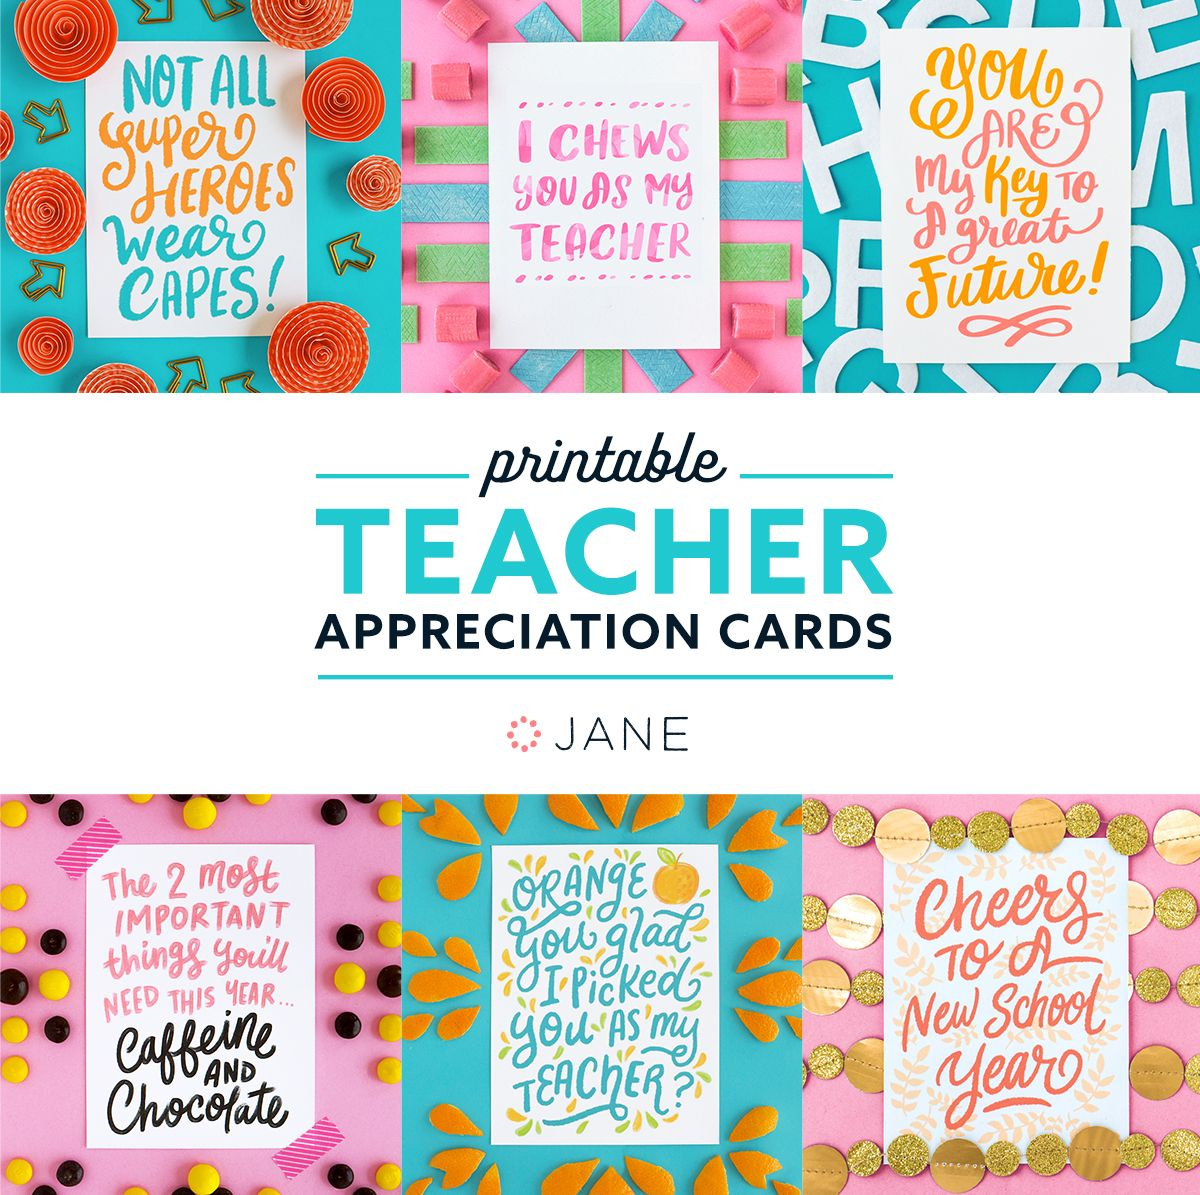 Jane Free Teacher Appreciation Printable Cards | Teacher - Free Teacher Appreciation Week Printable Cards